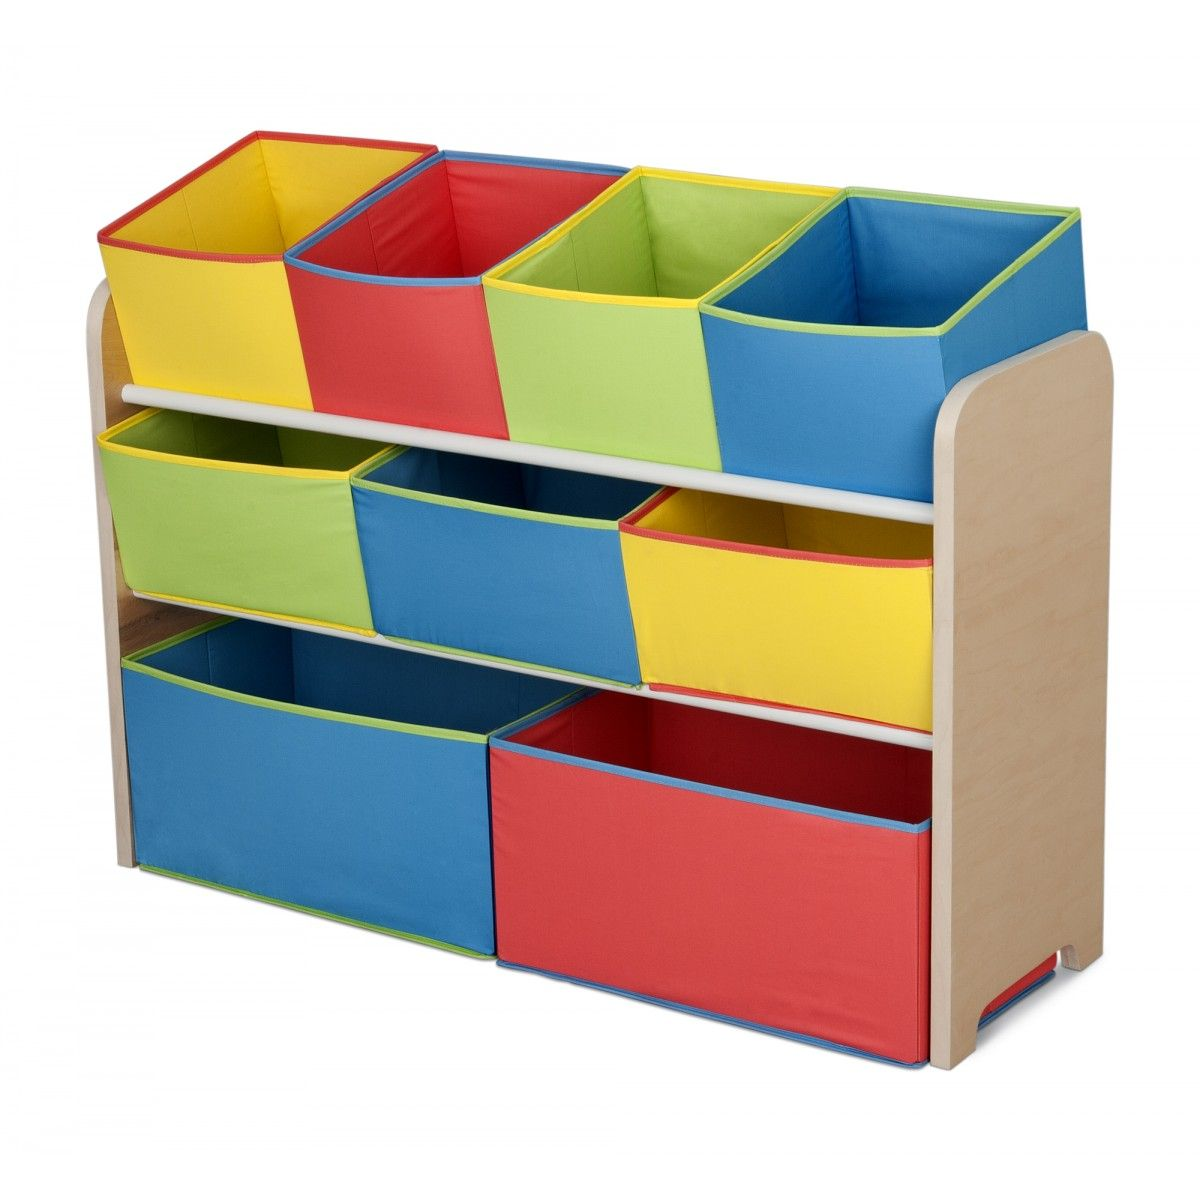 Multi Bin Toy Organizer | Delta Multi Color Toy Organizer With Storage Bins